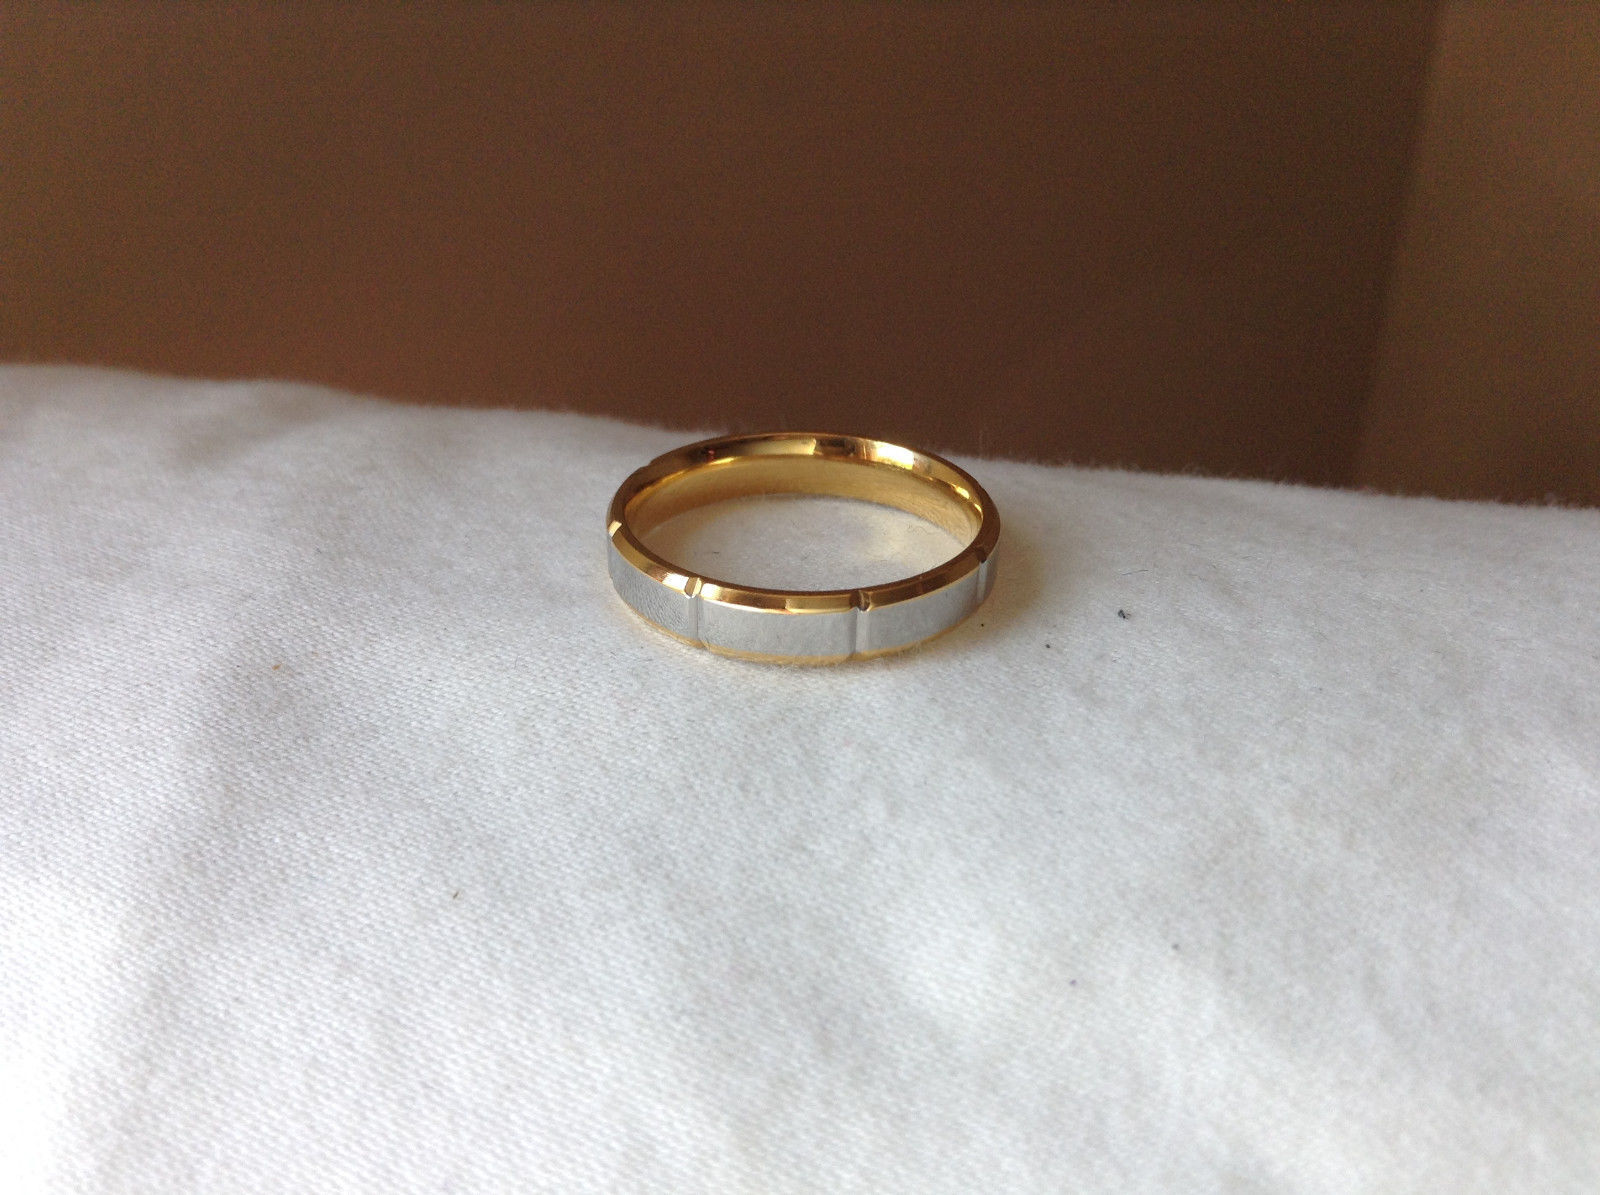 Segmented Design Silver and Gold Plated Ring Size 7,8